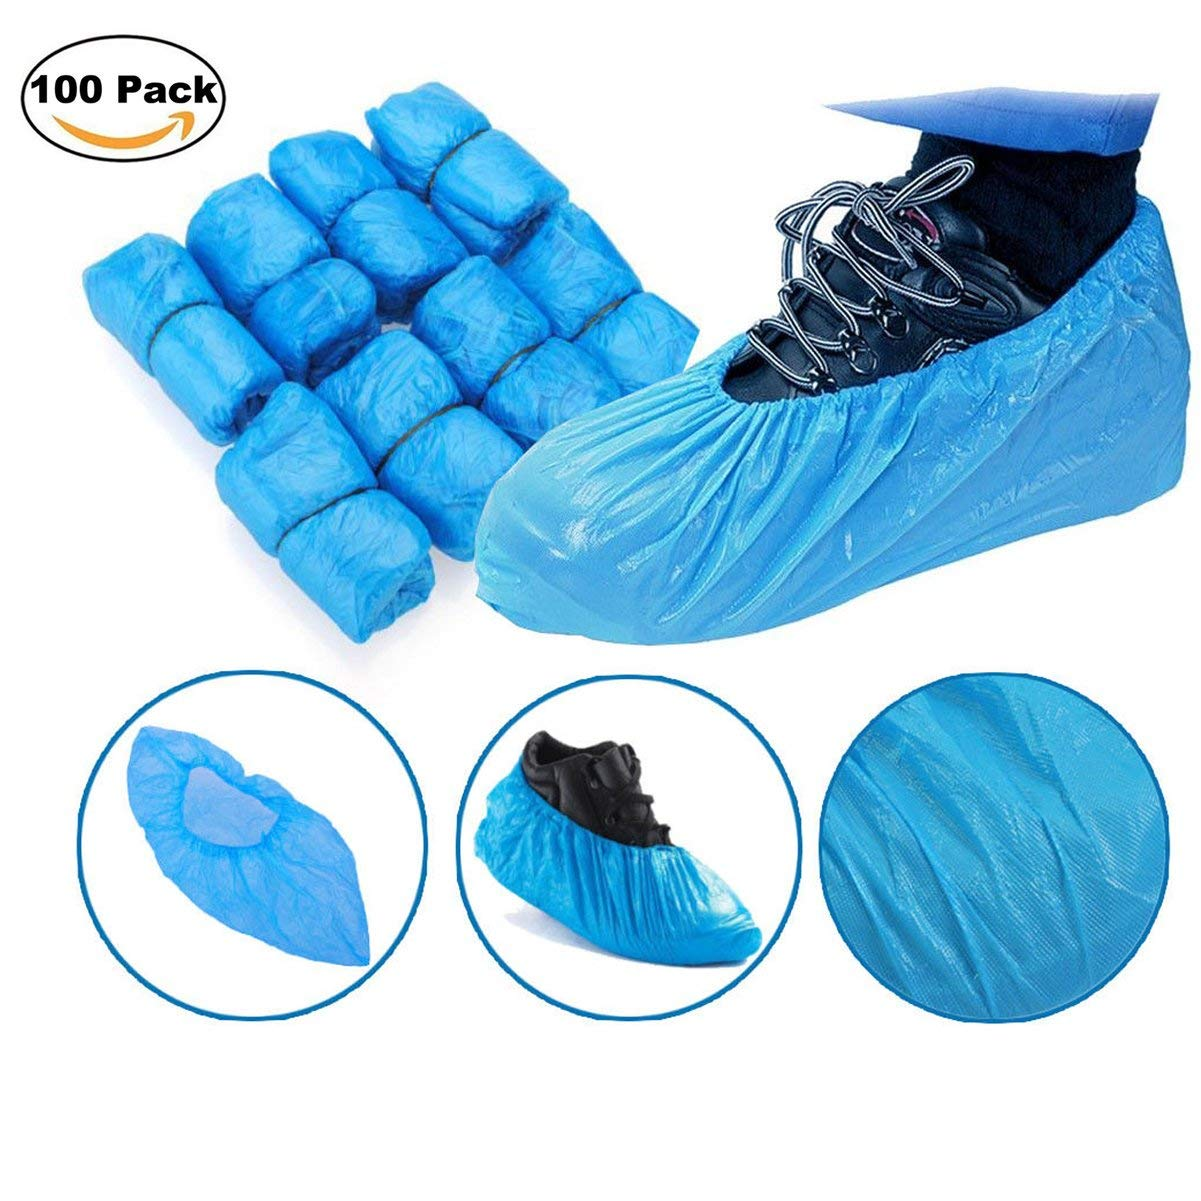 5 Pairs Boot Covers Disposable Shoe Covers Overshoes Medical Waterproof 40cm